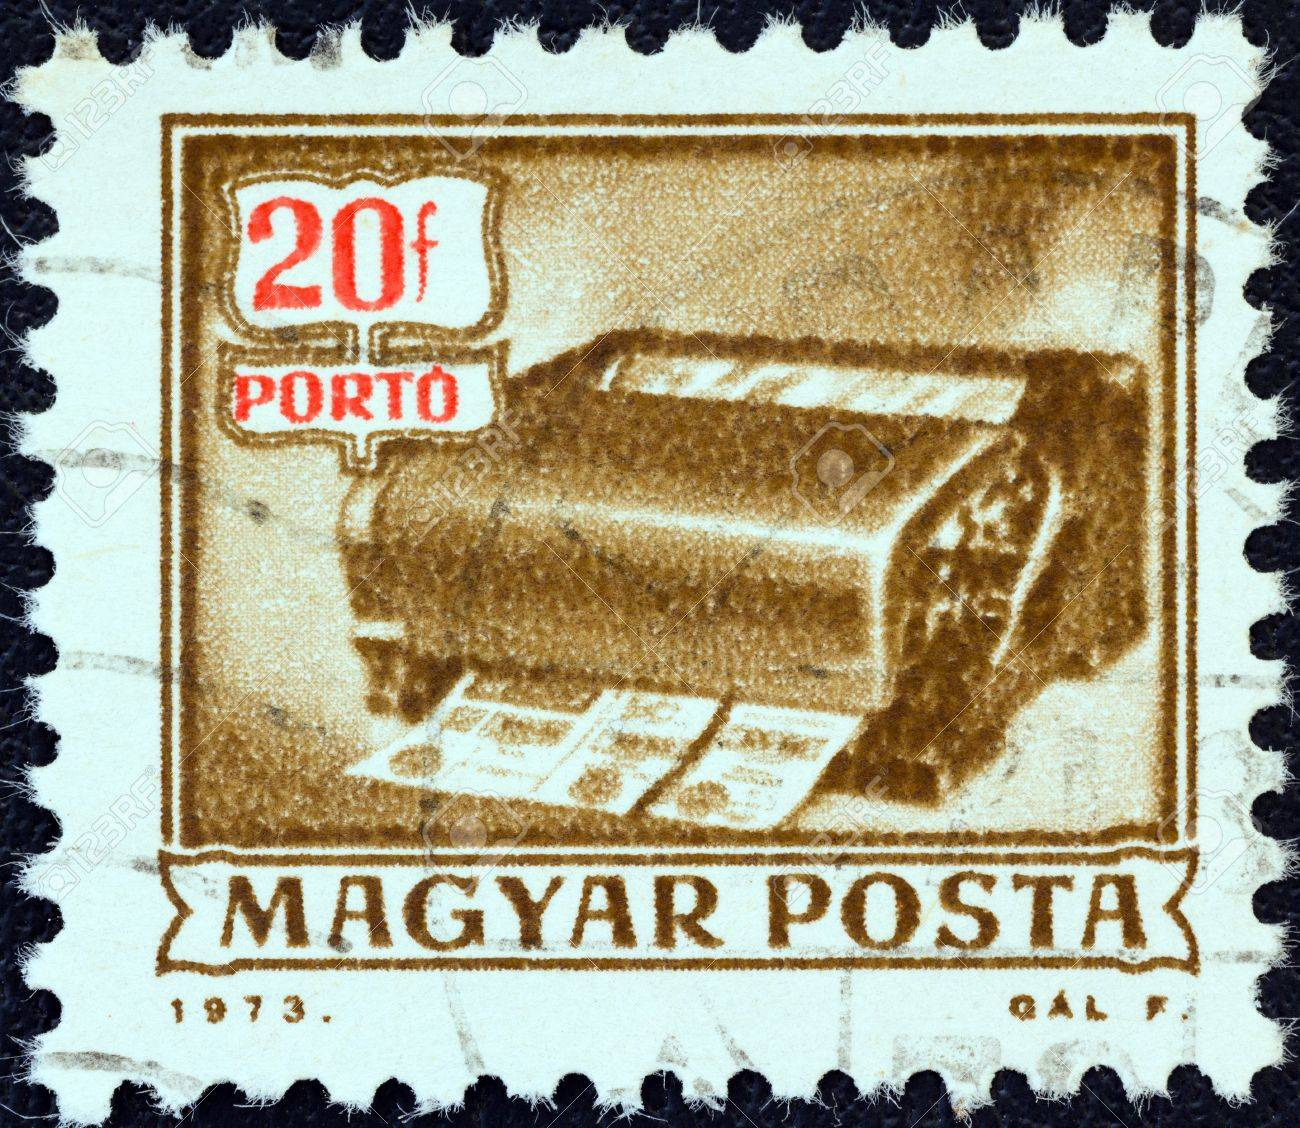 HUNGARY - CIRCA 1973: A stamp printed in Hungary from the